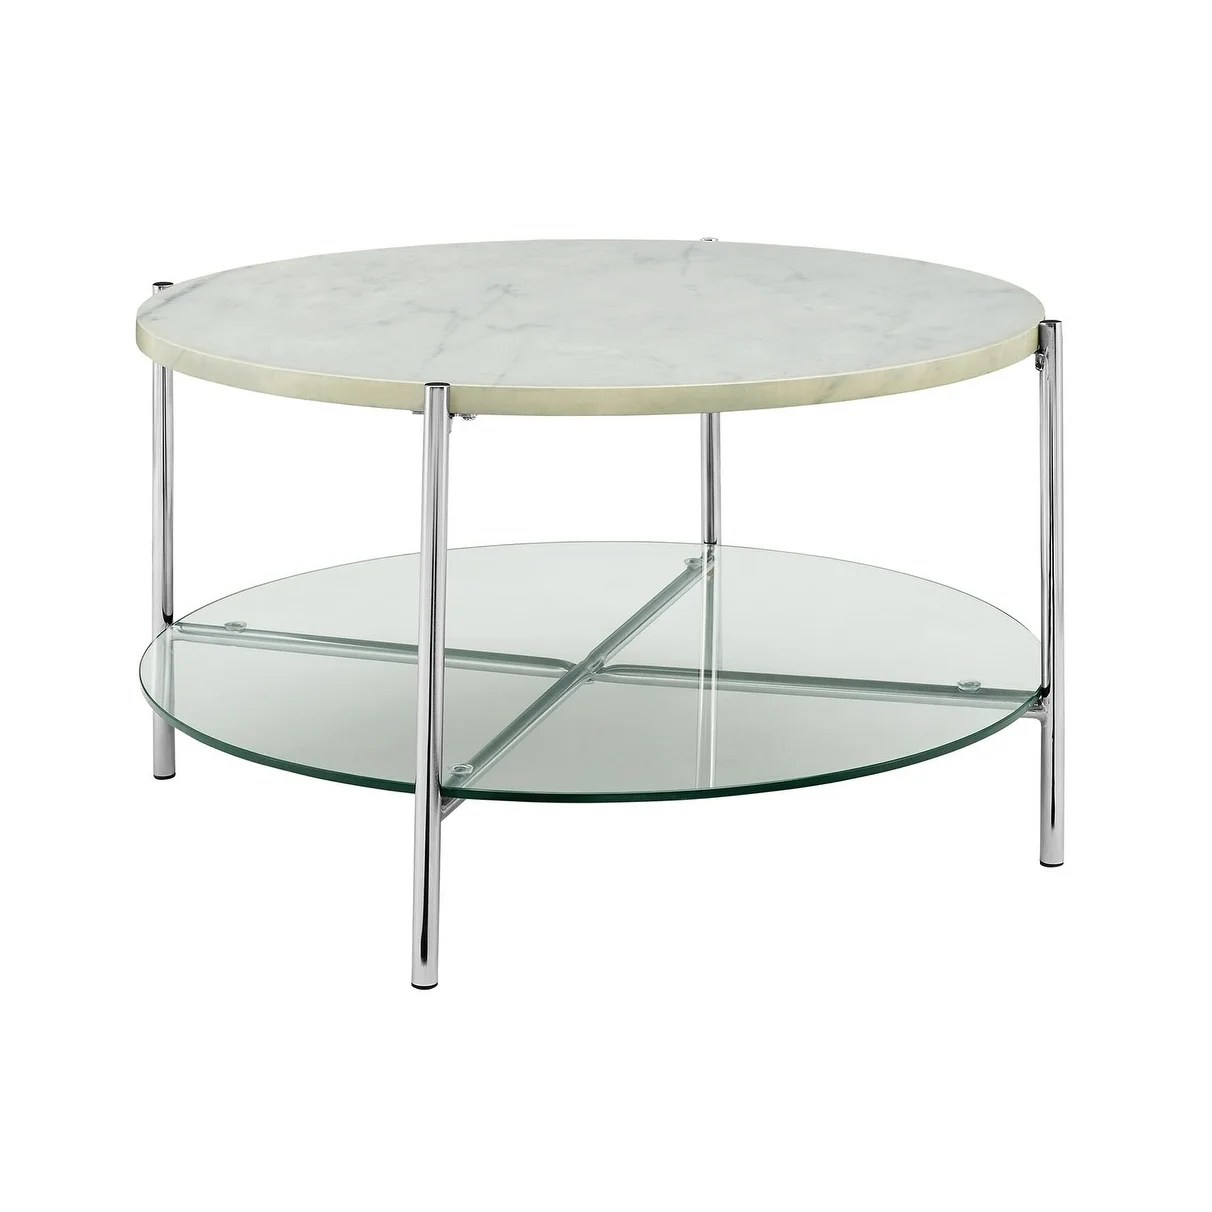 """Offex 32"""" Mid Century Modern Round Coffee Table with White Marble Top, Glass Shelf and Chrome Legs"""